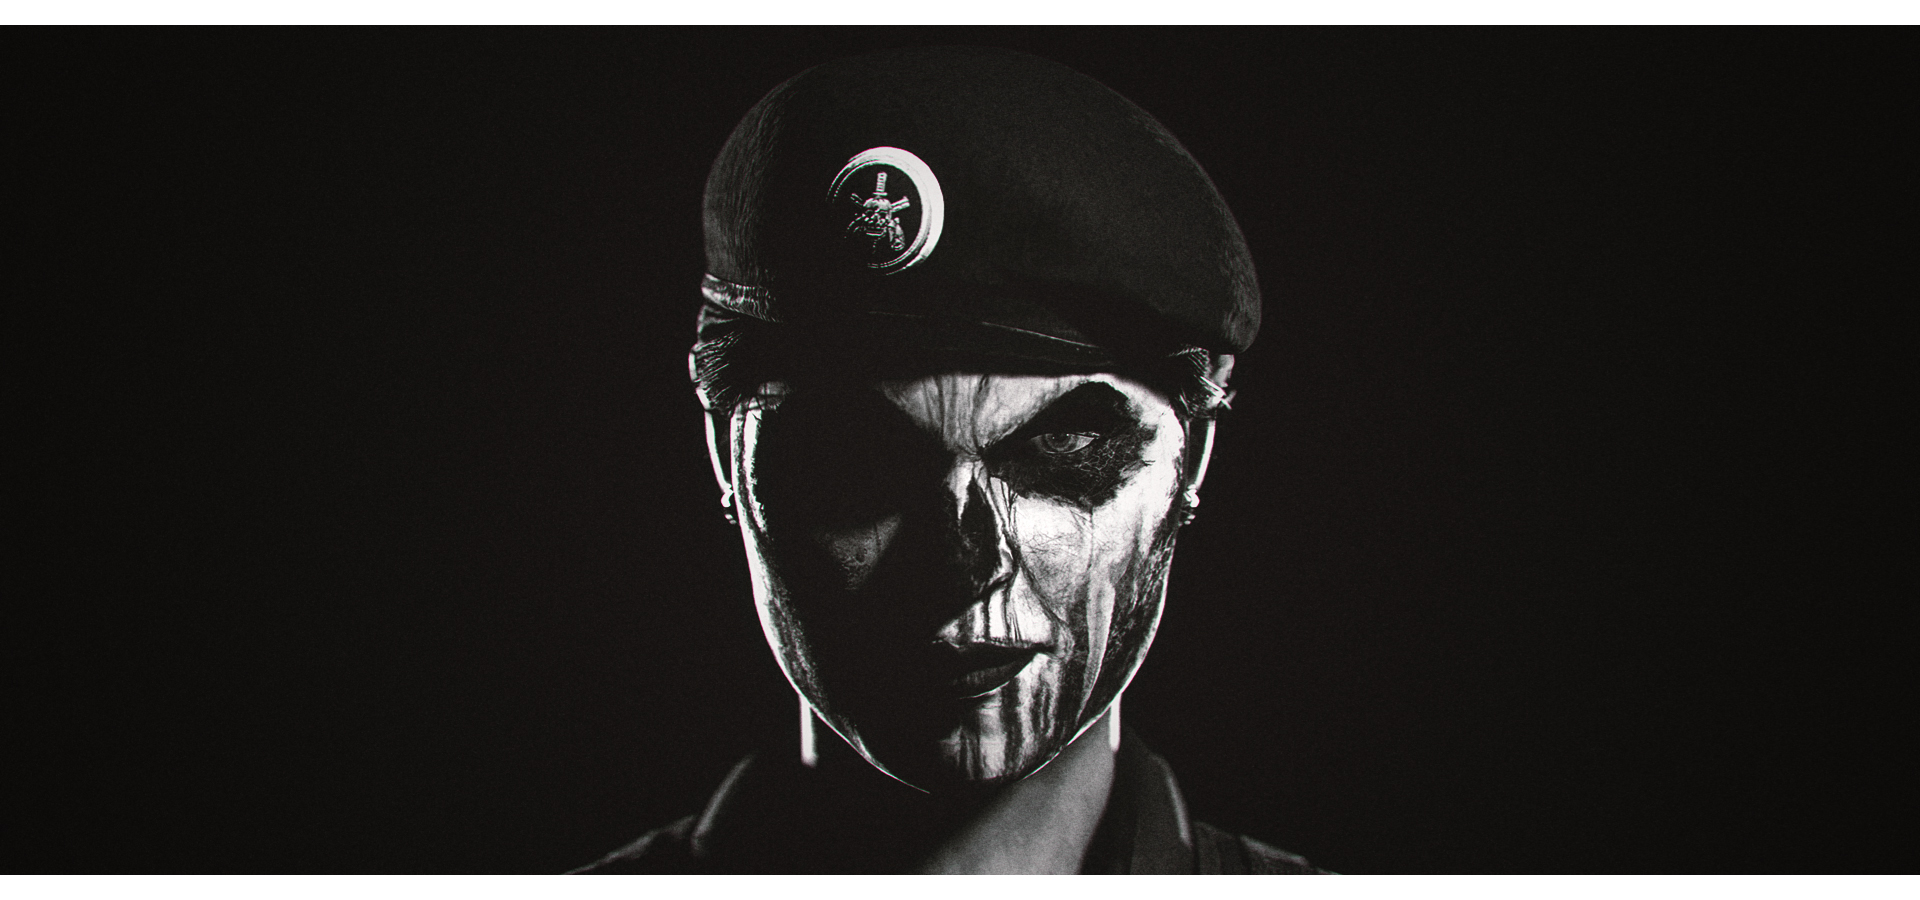 Caveira Wallpaper Posted By Ethan Cunningham